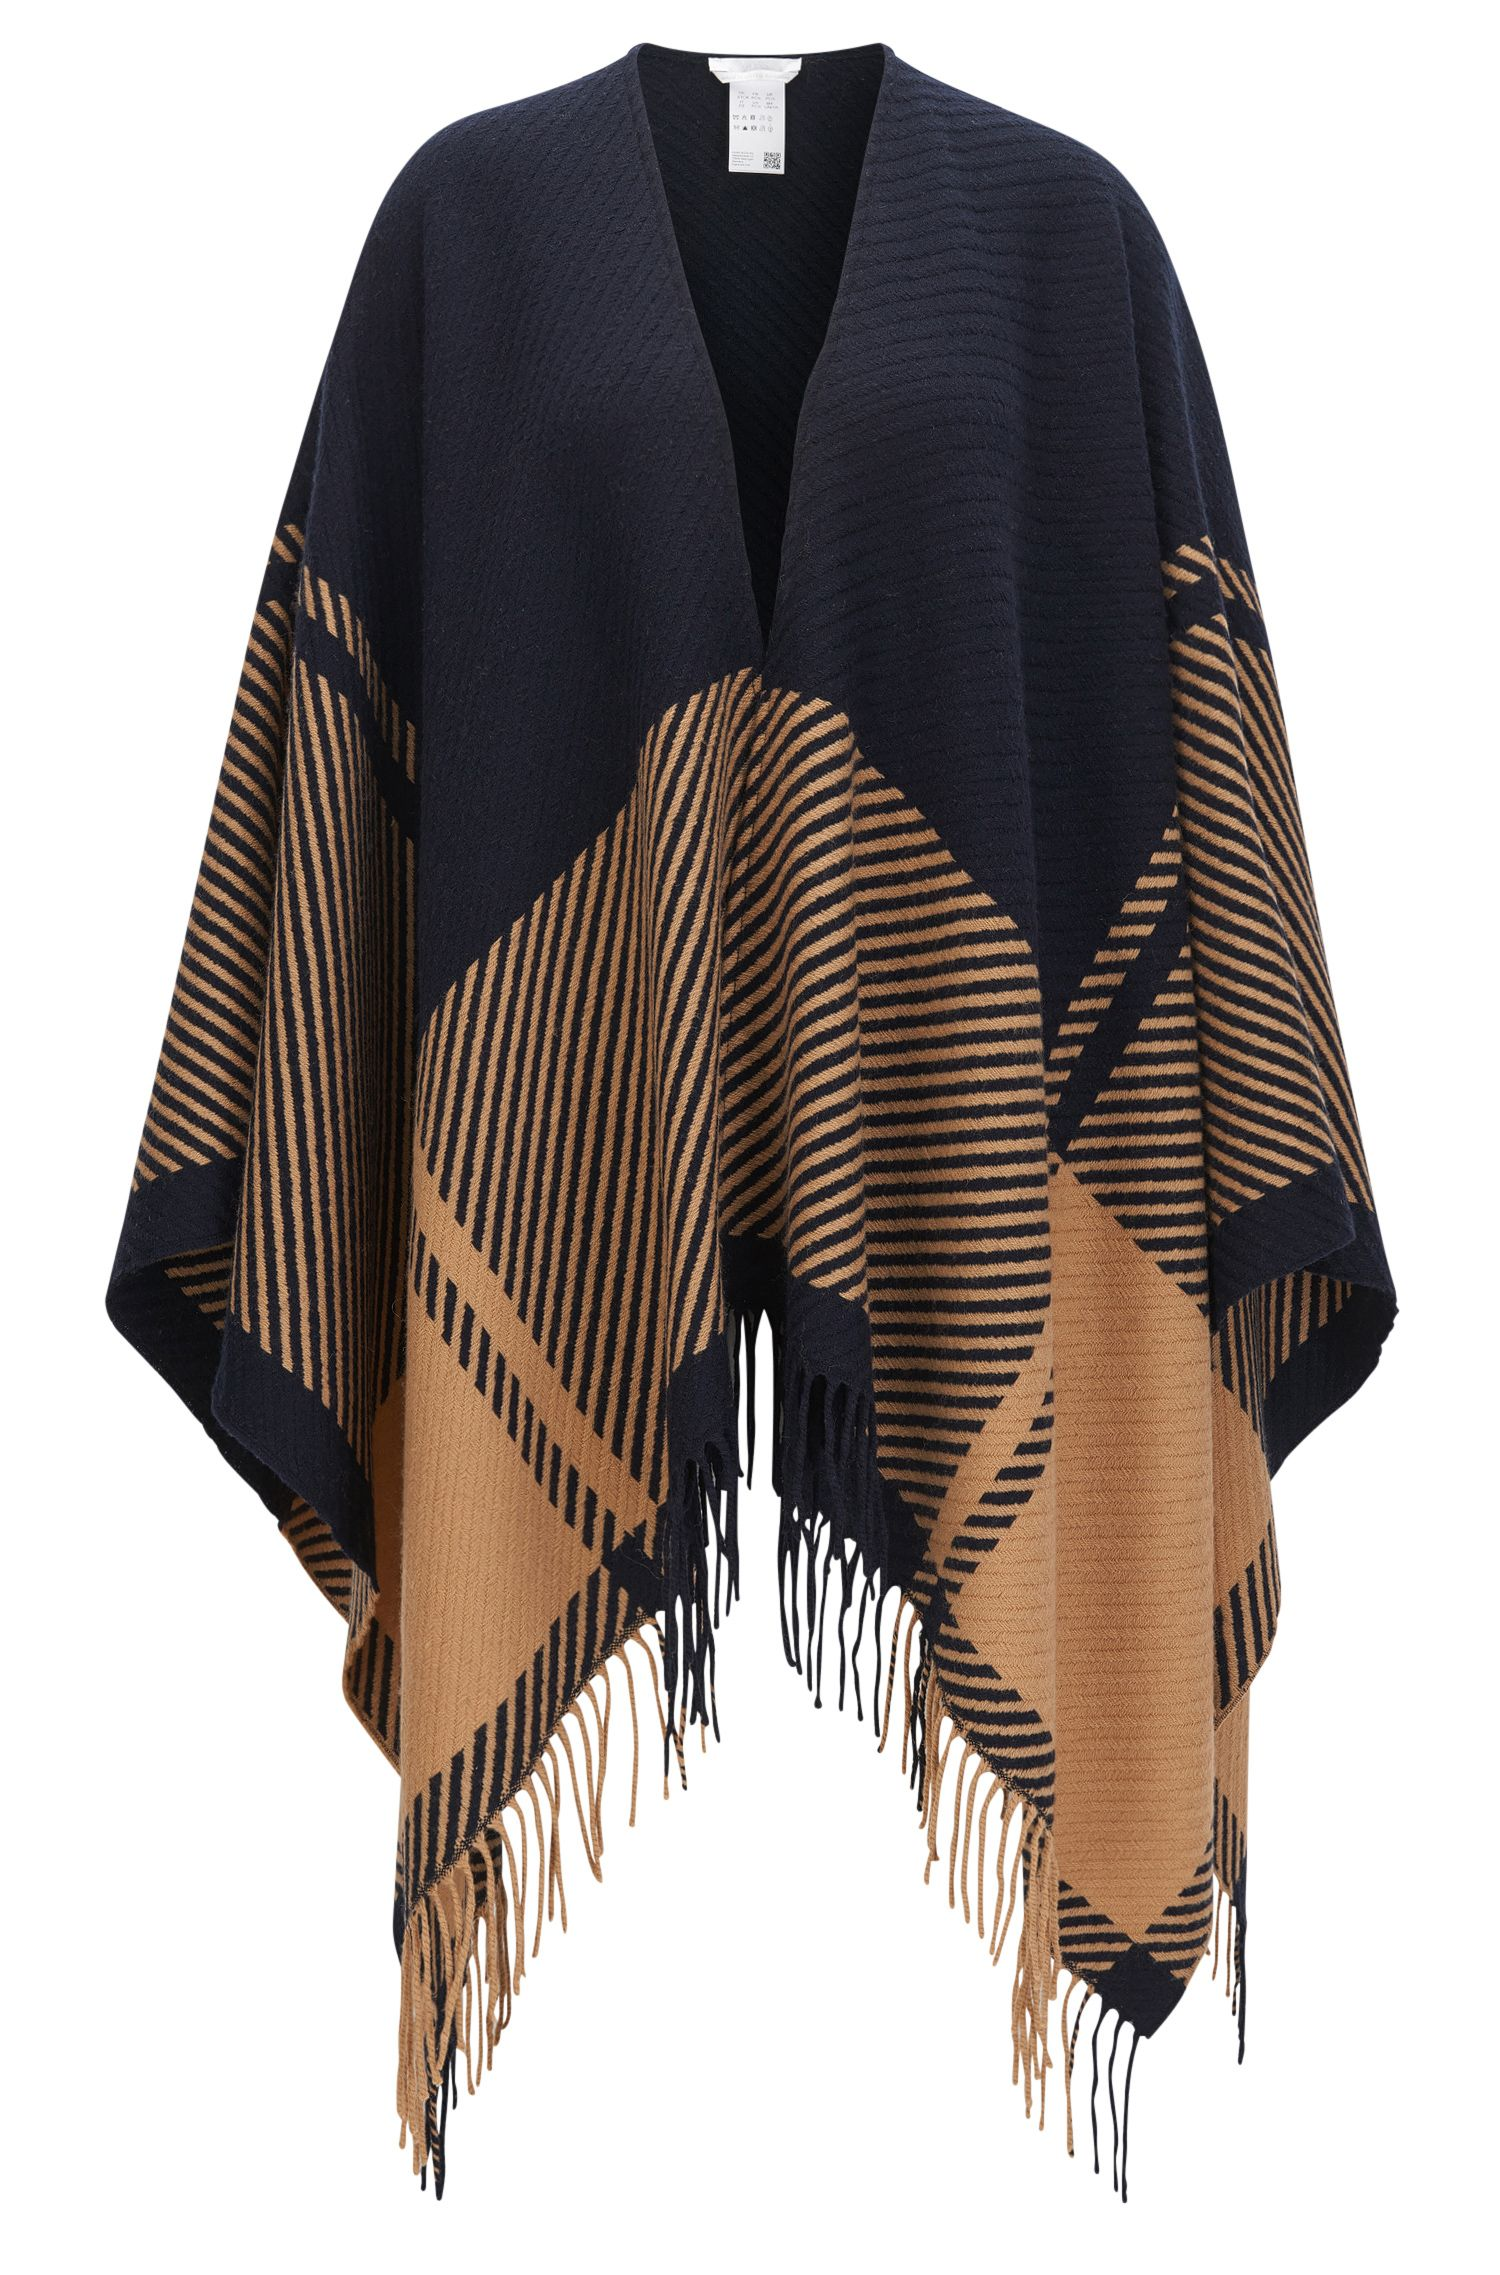 Graphic-pattern wool-blend poncho with fringed ends